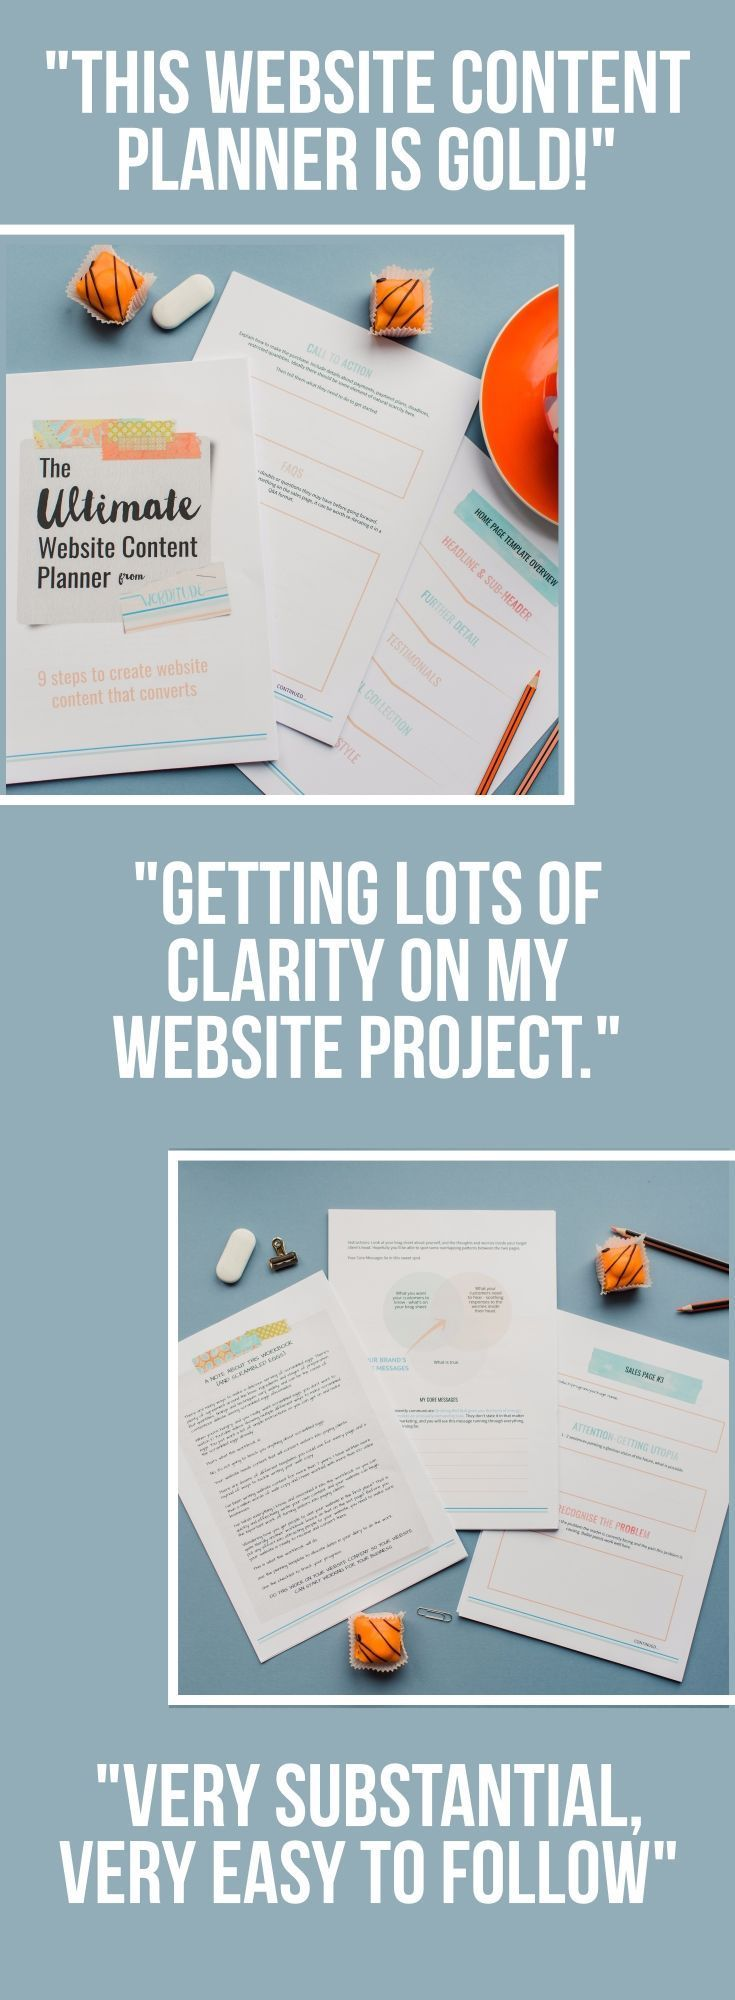 Creating or revamping your website? Get help writing your website content with this step-by-step planner for entrepreneurs, solorpreneurs and small businesses. Get help with your online marketing, email marketing and more. Repin, then visit the planner to see photos and feedback.